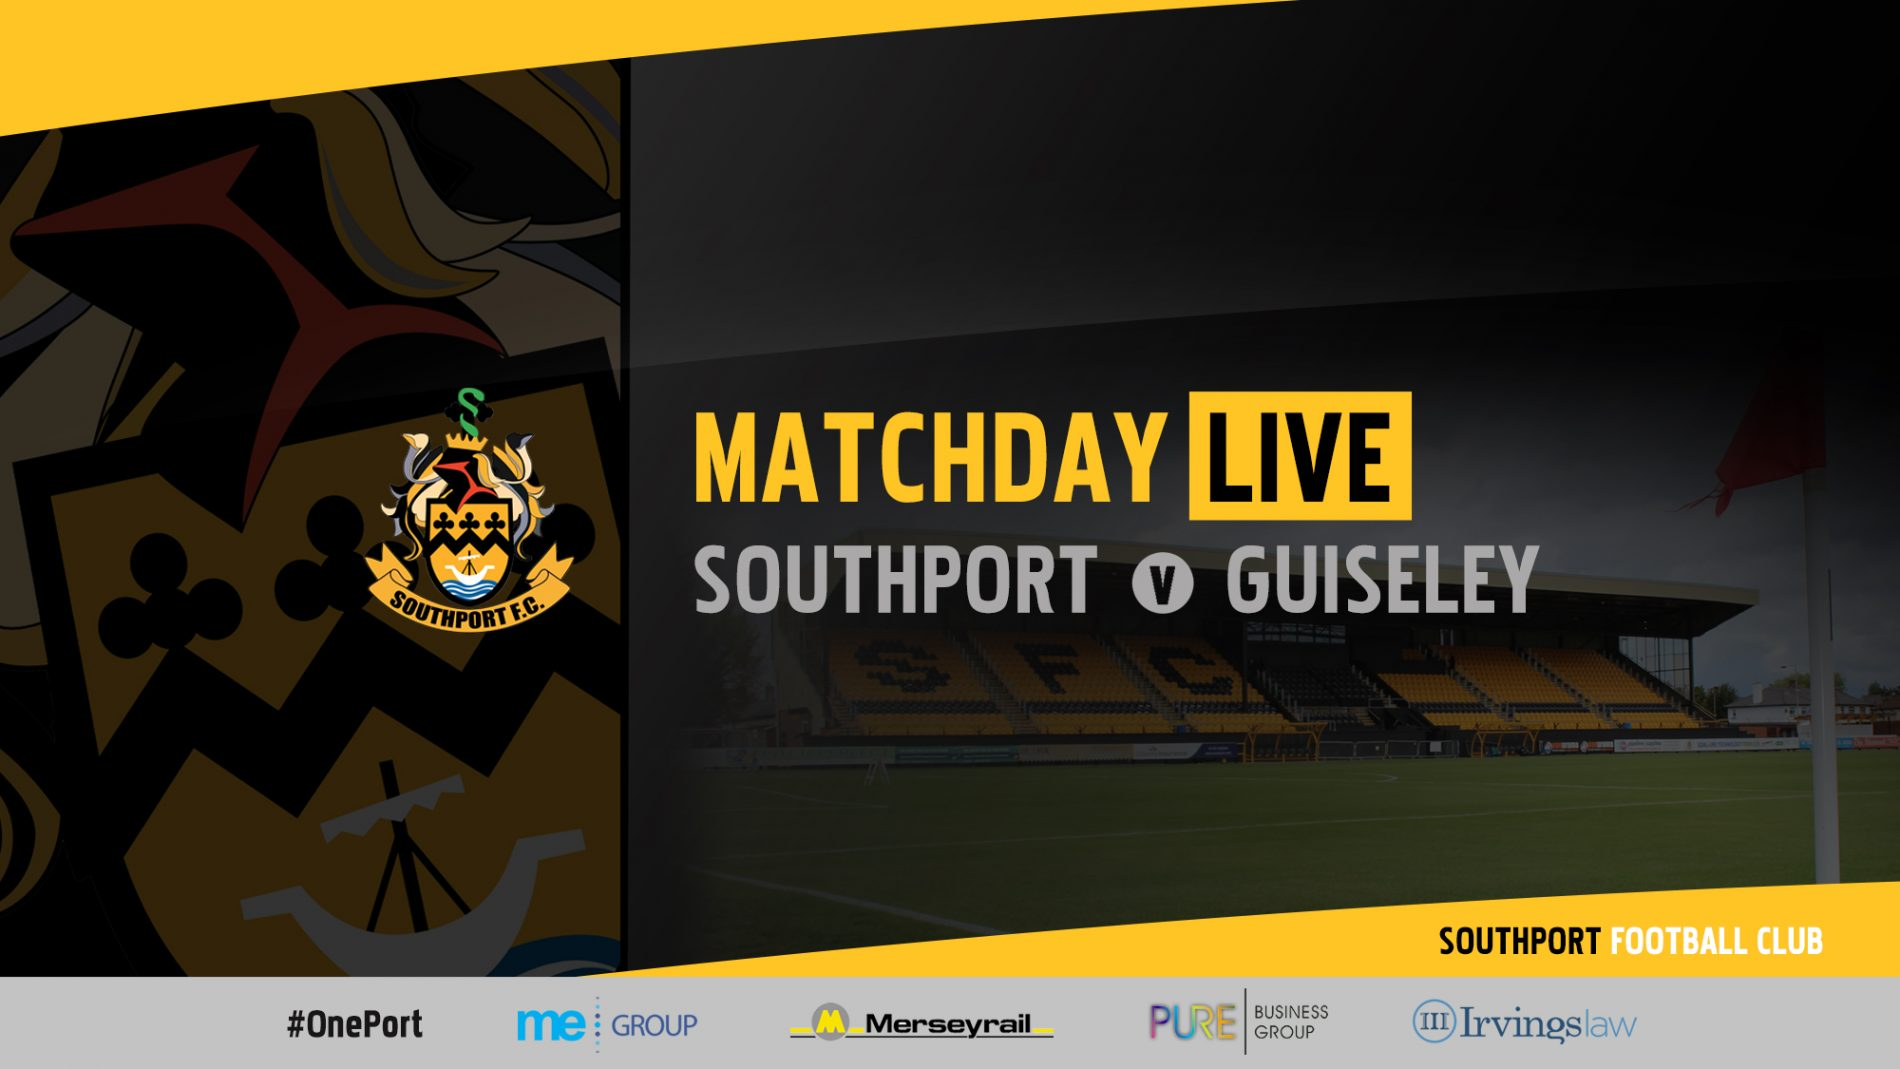 MATCHDAY LIVE | Southport v Guiseley